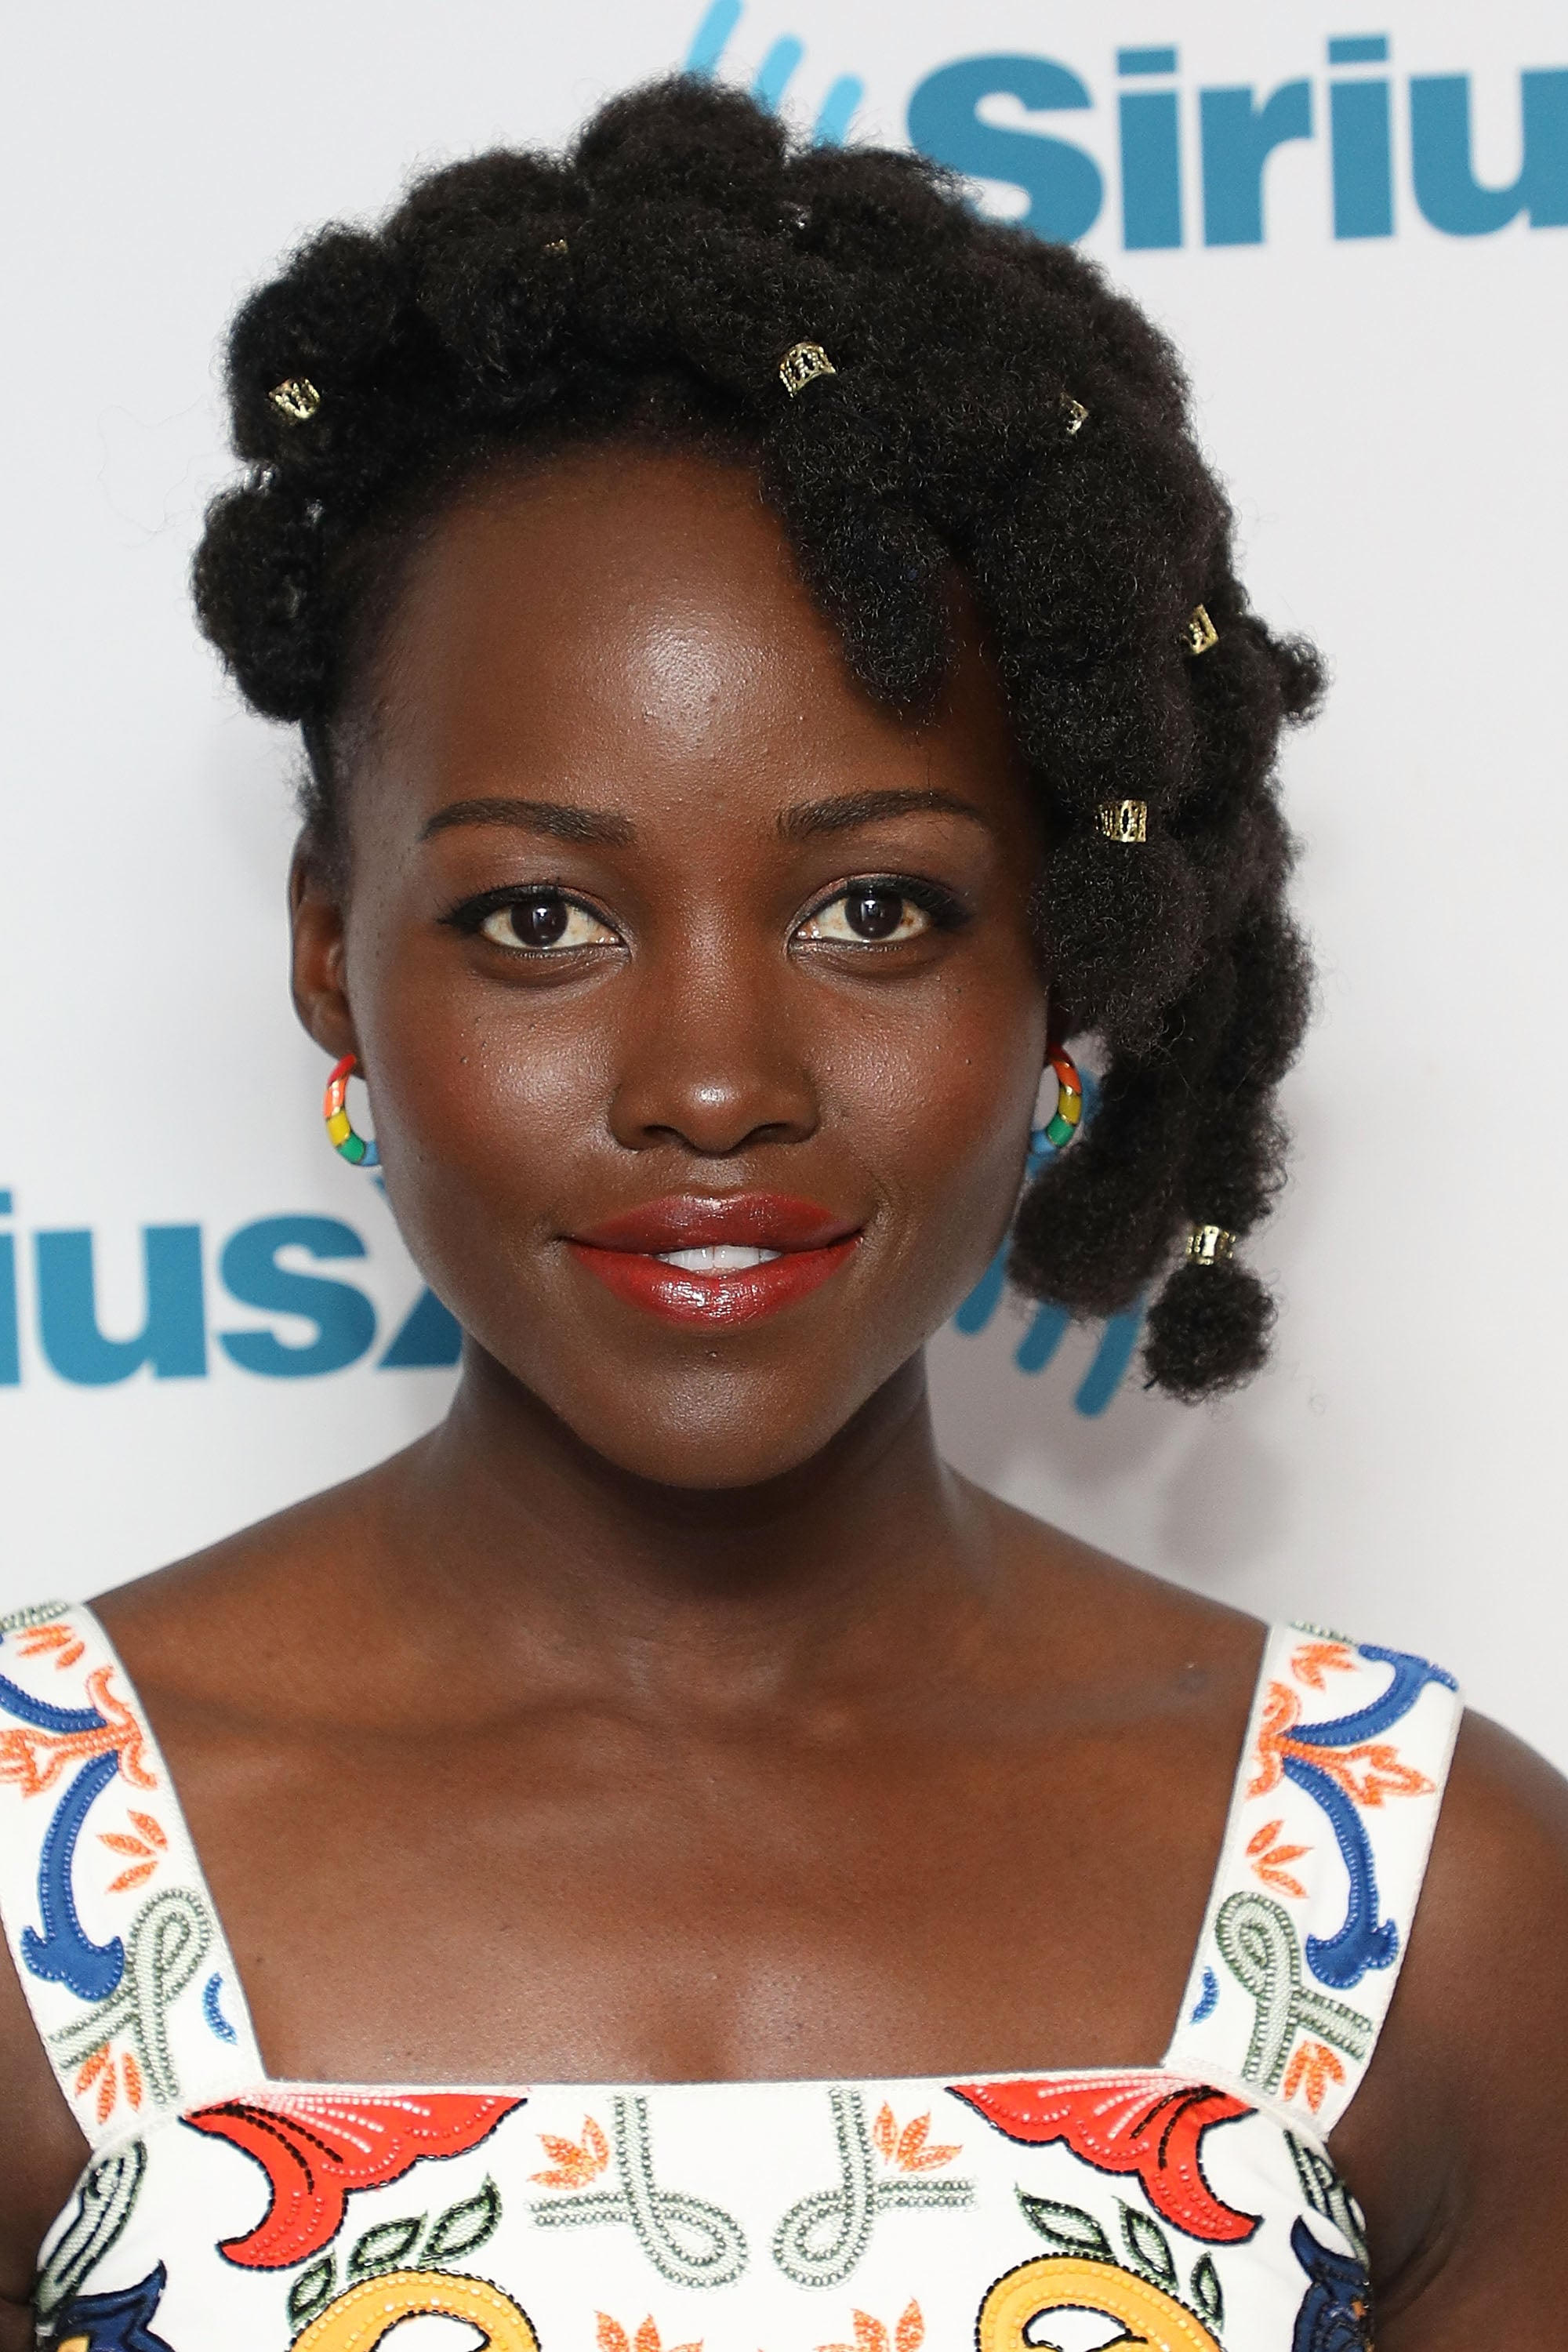 NEW YORK, NY - MAY 15:  Actress Lupita Nyong'o visits the SiriusXM Studios on May 15, 2018 in New York City.  (Photo by Taylor Hill/Getty Images)